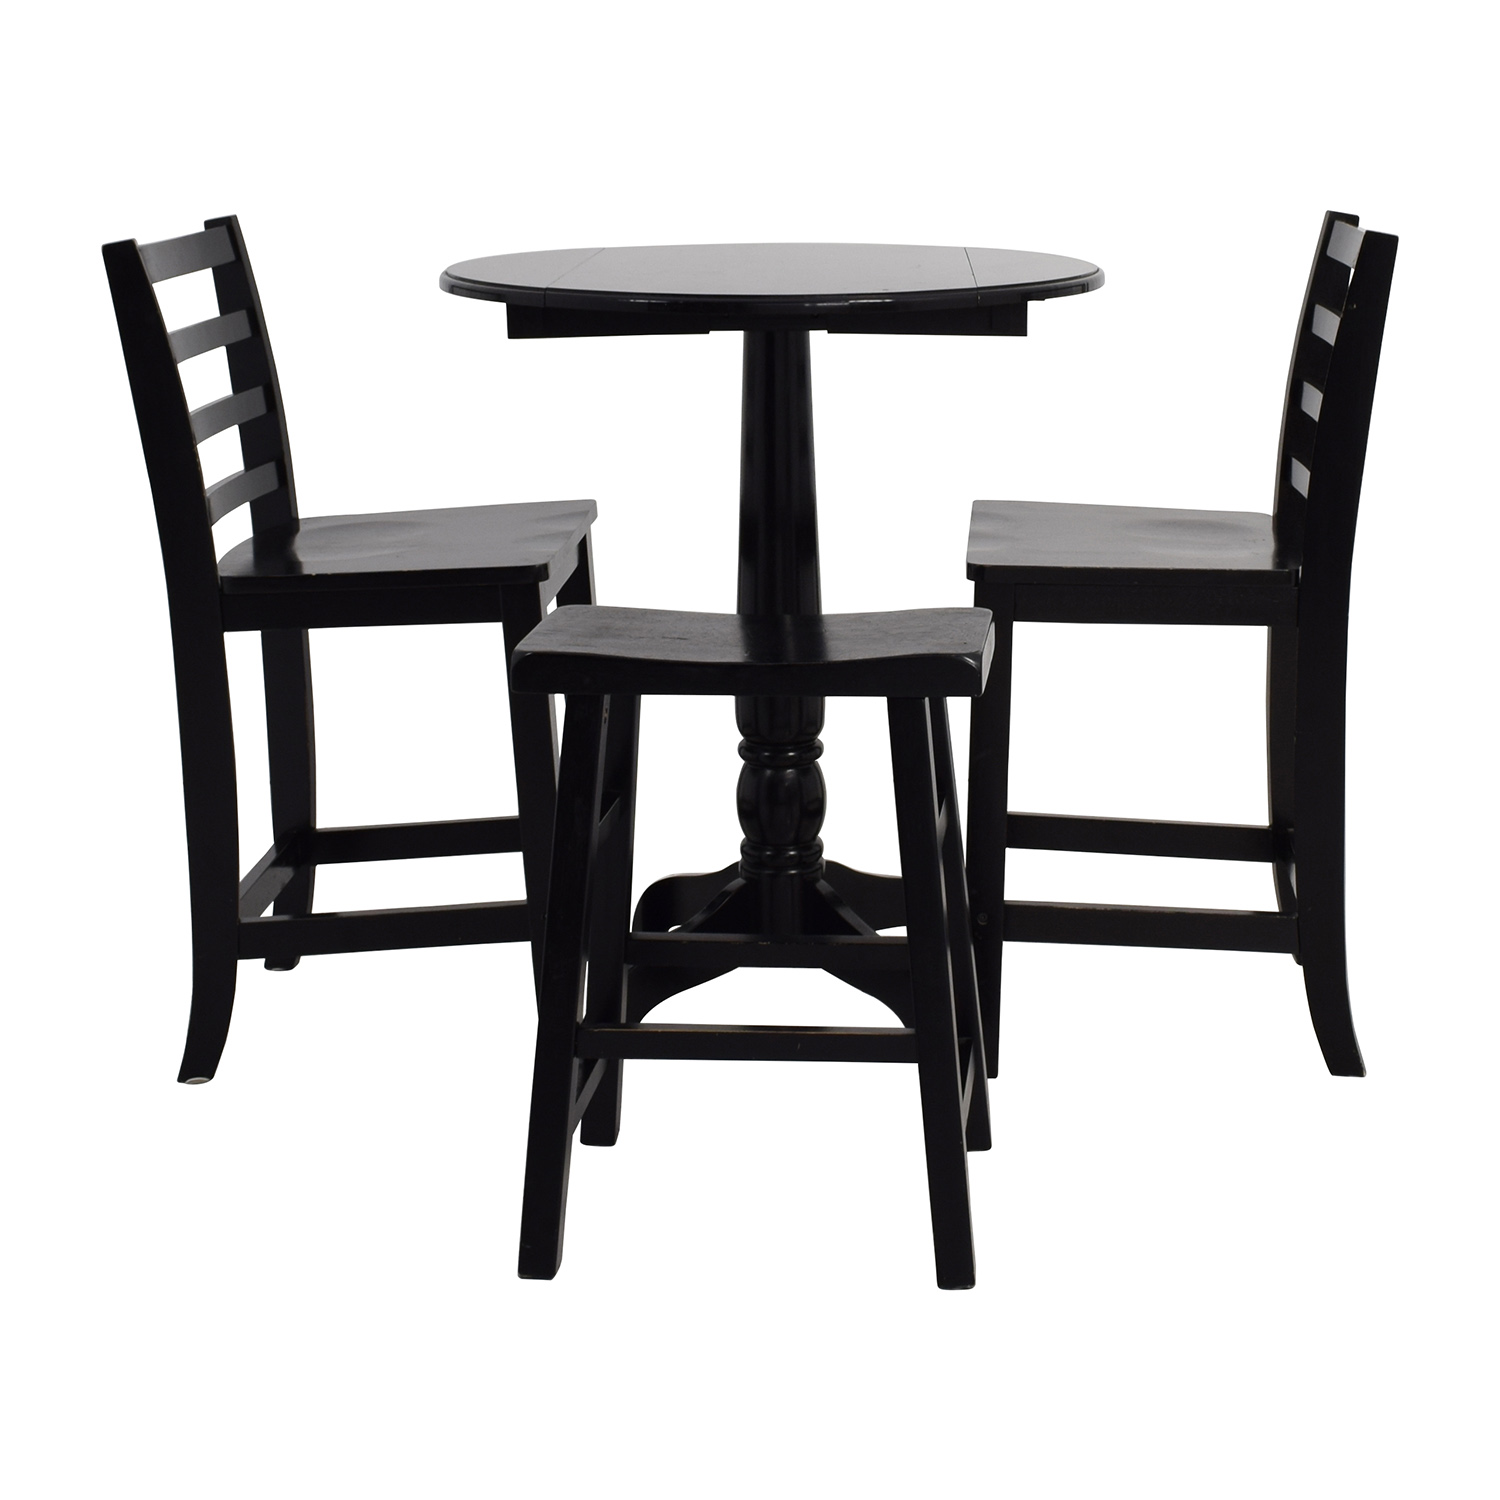 Round Table With Stools: Counter Black Round Table With Chairs And Stool